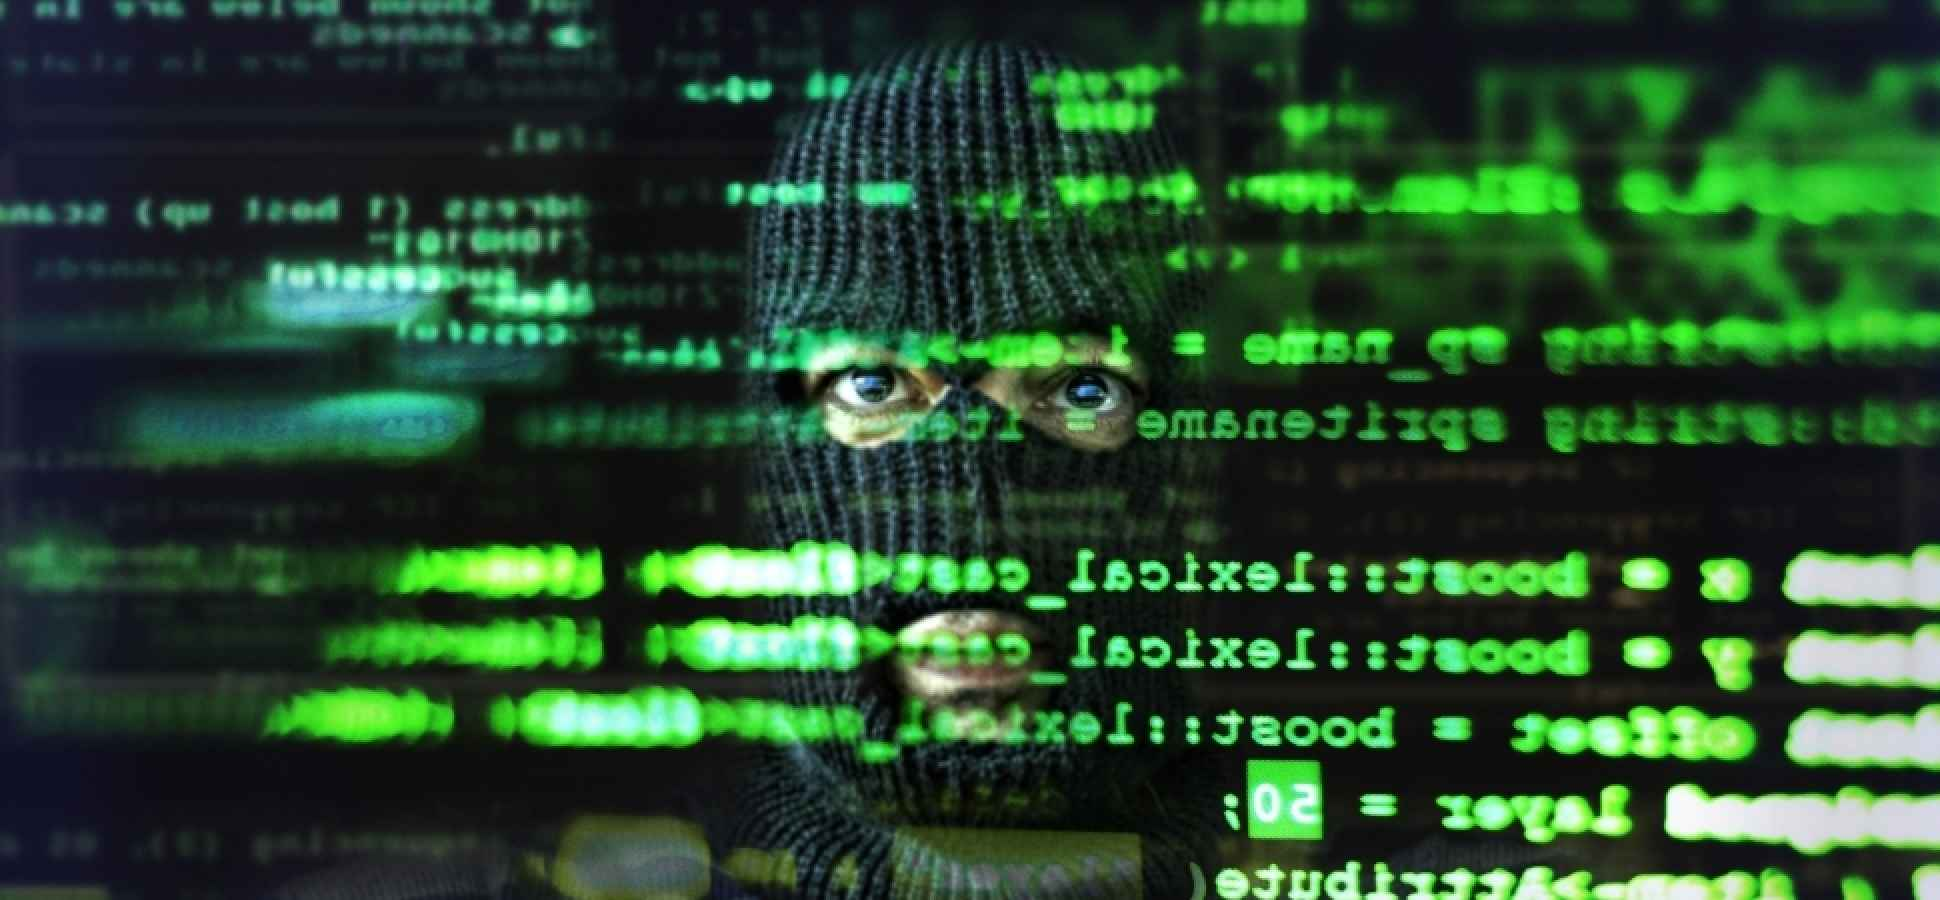 6 Ways You Can Protect Yourself From Hacking